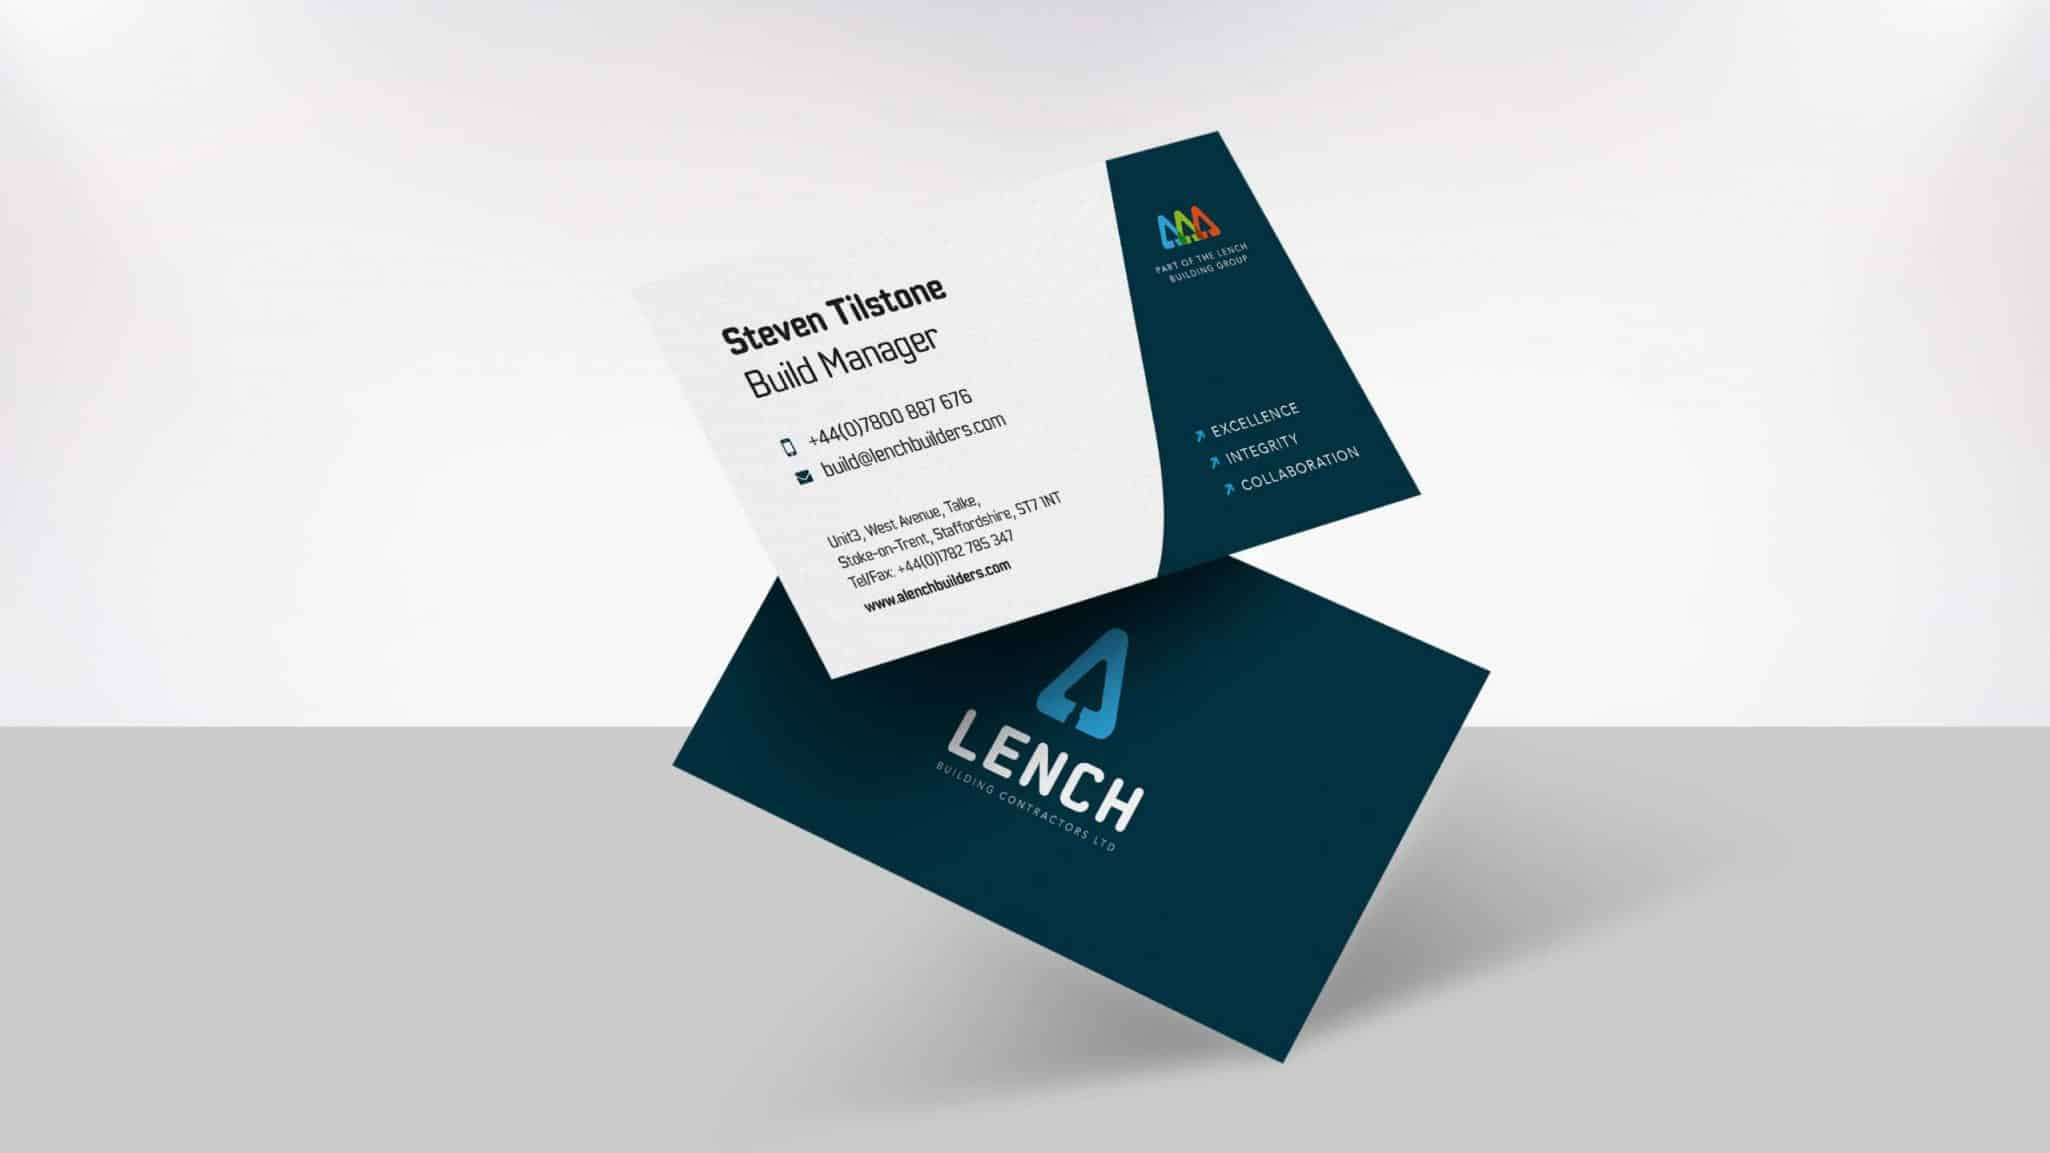 A Lench Business Card